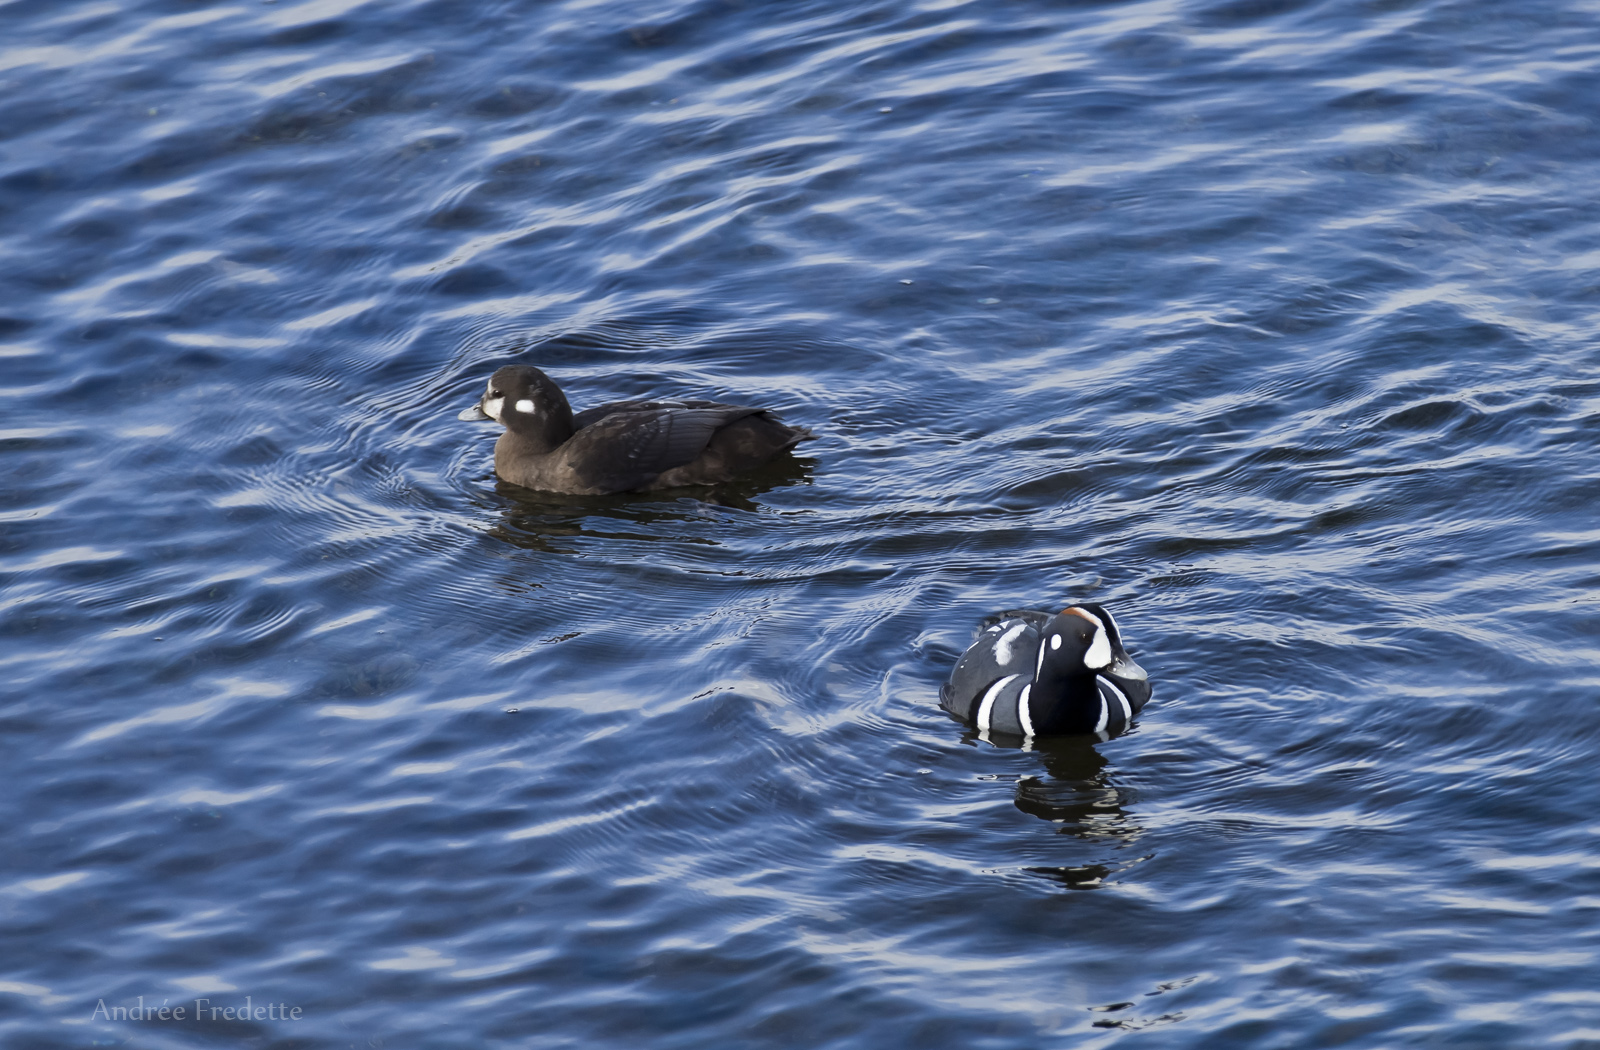 Harlequin ducks, East Point, Saturna Island, BC. Photo by Andrée Fredette